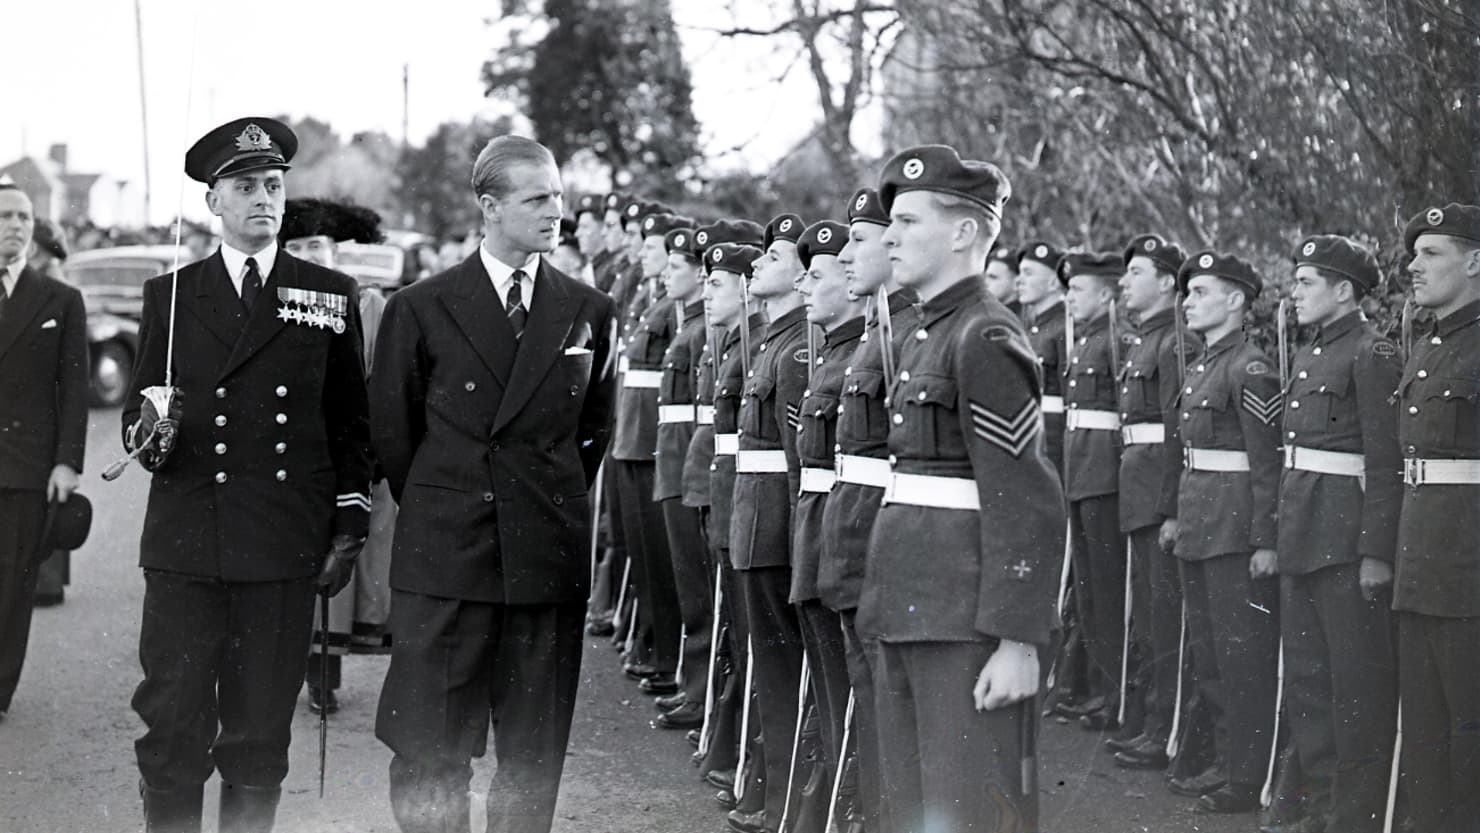 Prince Philip inspects soldiers in Elburton in October 1951 © Mirrorpix